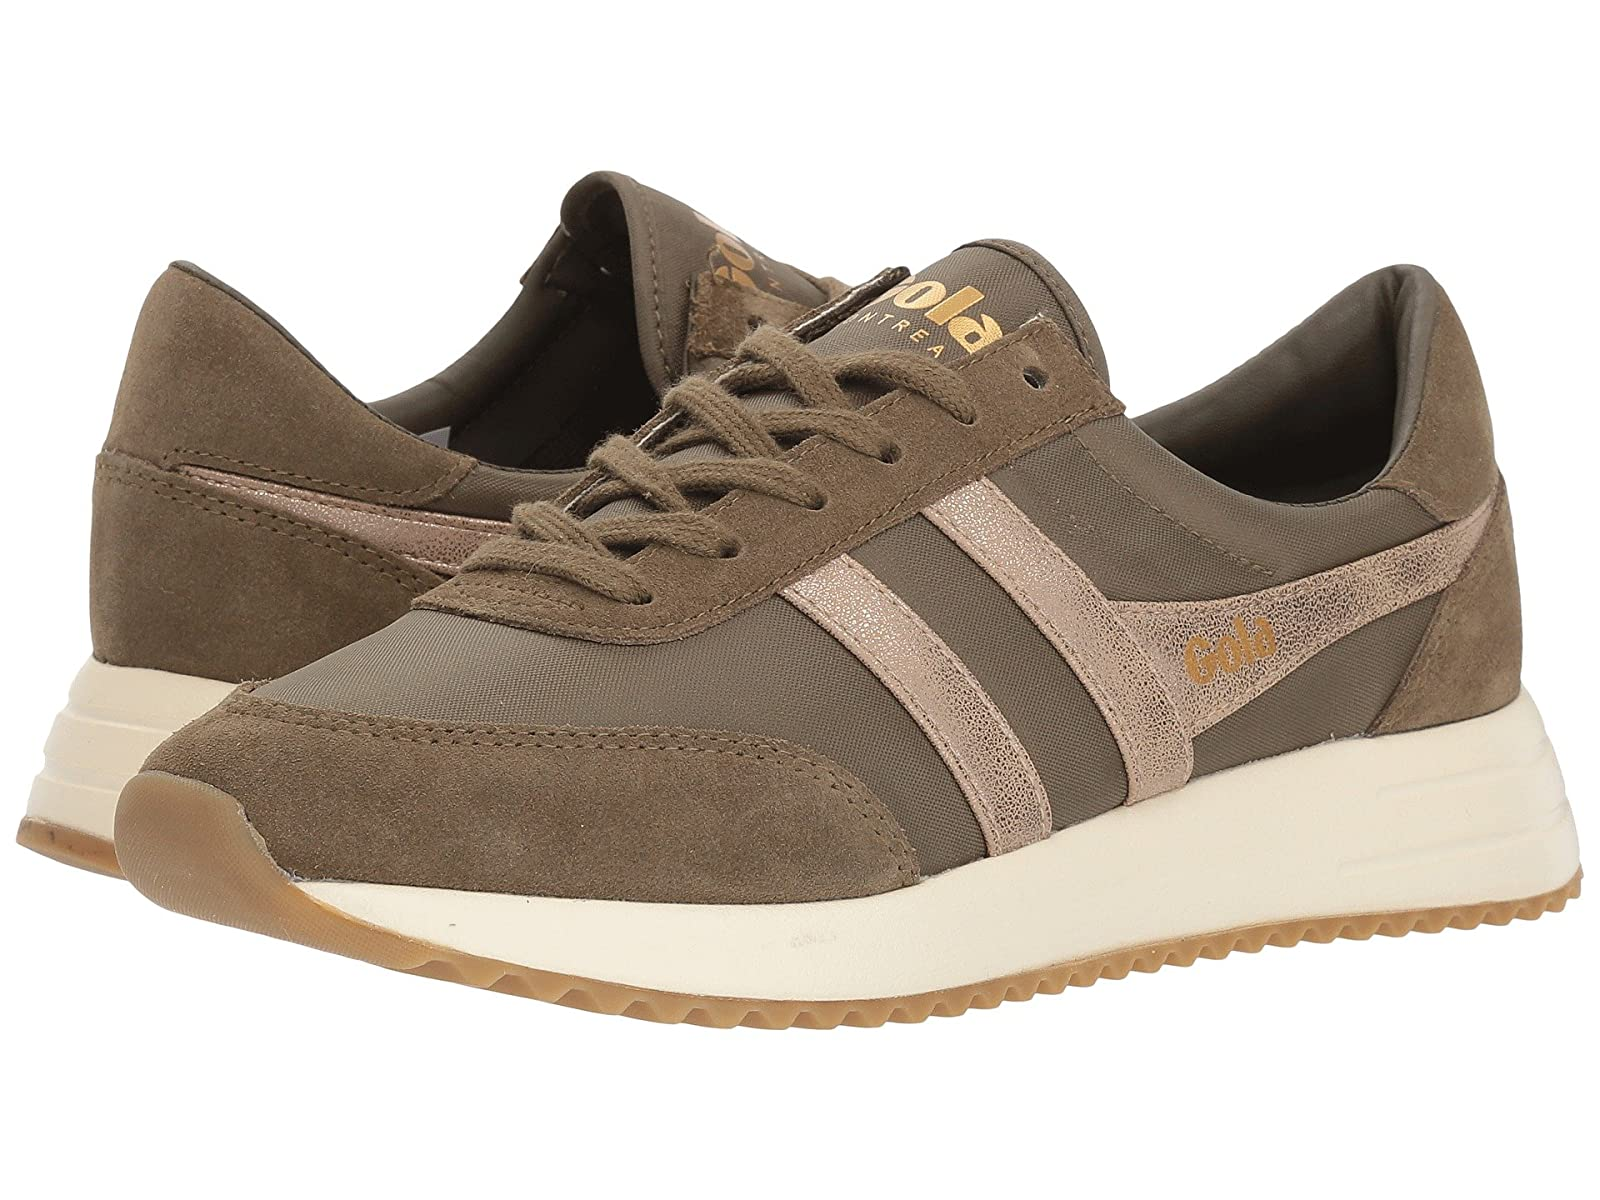 Gola Montreal MirrorAtmospheric grades have affordable shoes